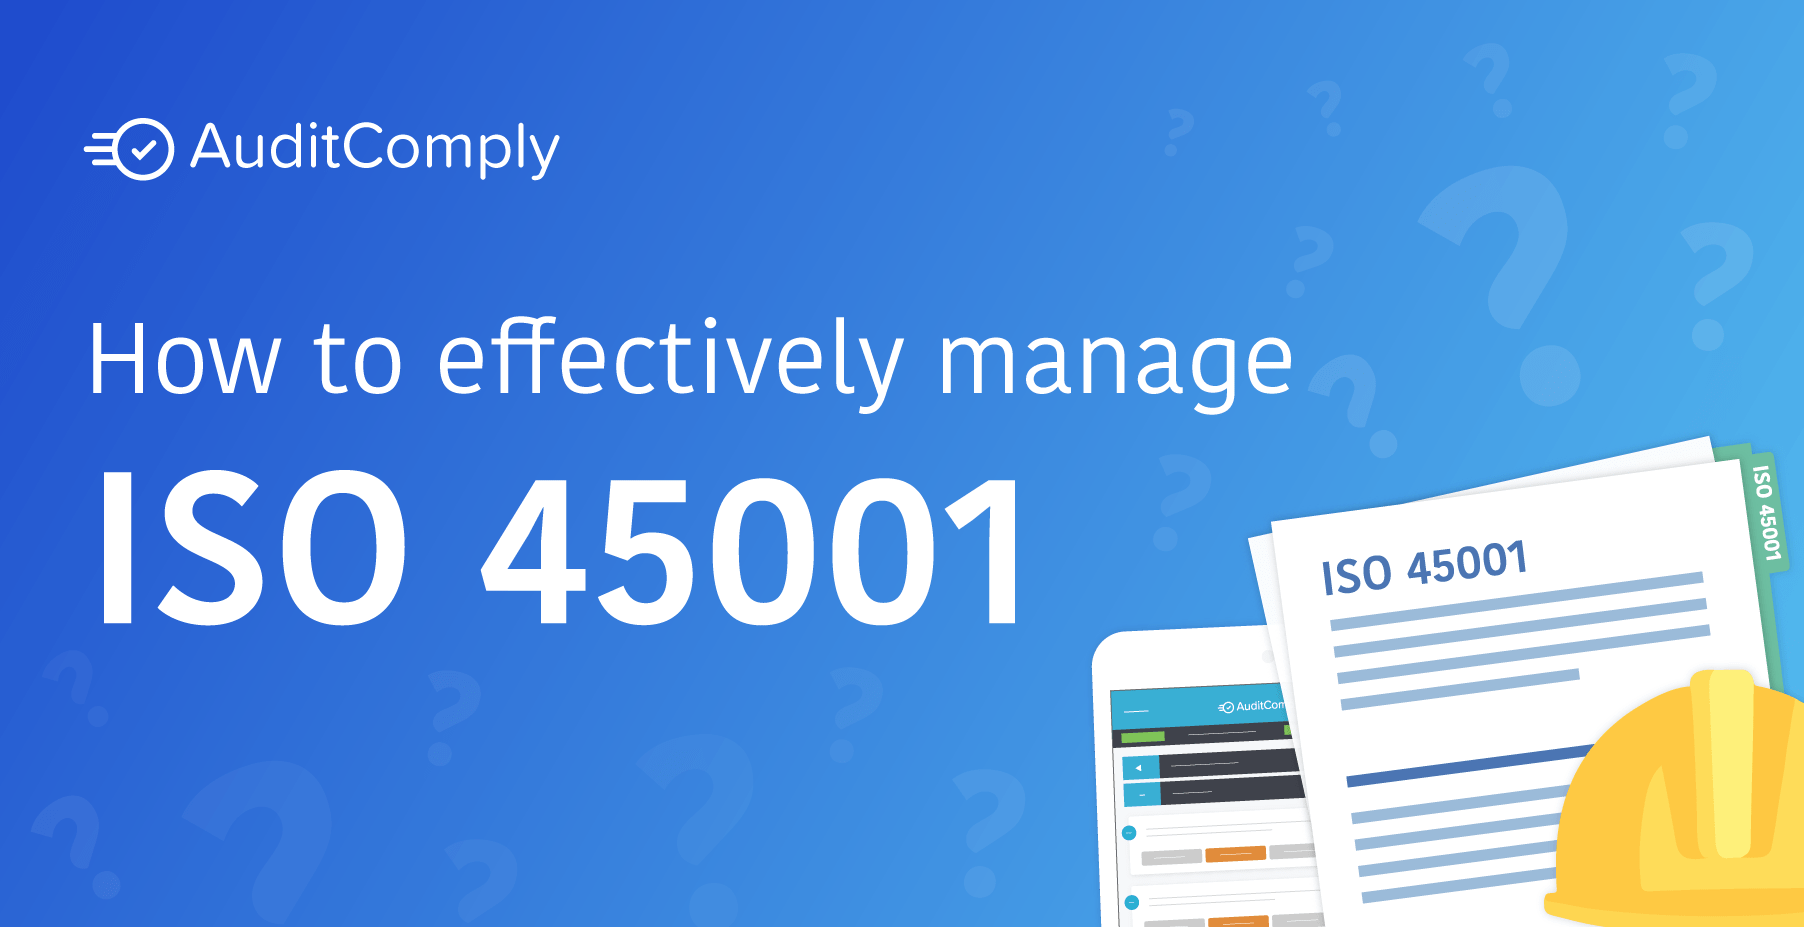 How to effectively manage ISO 45001 - AuditComply